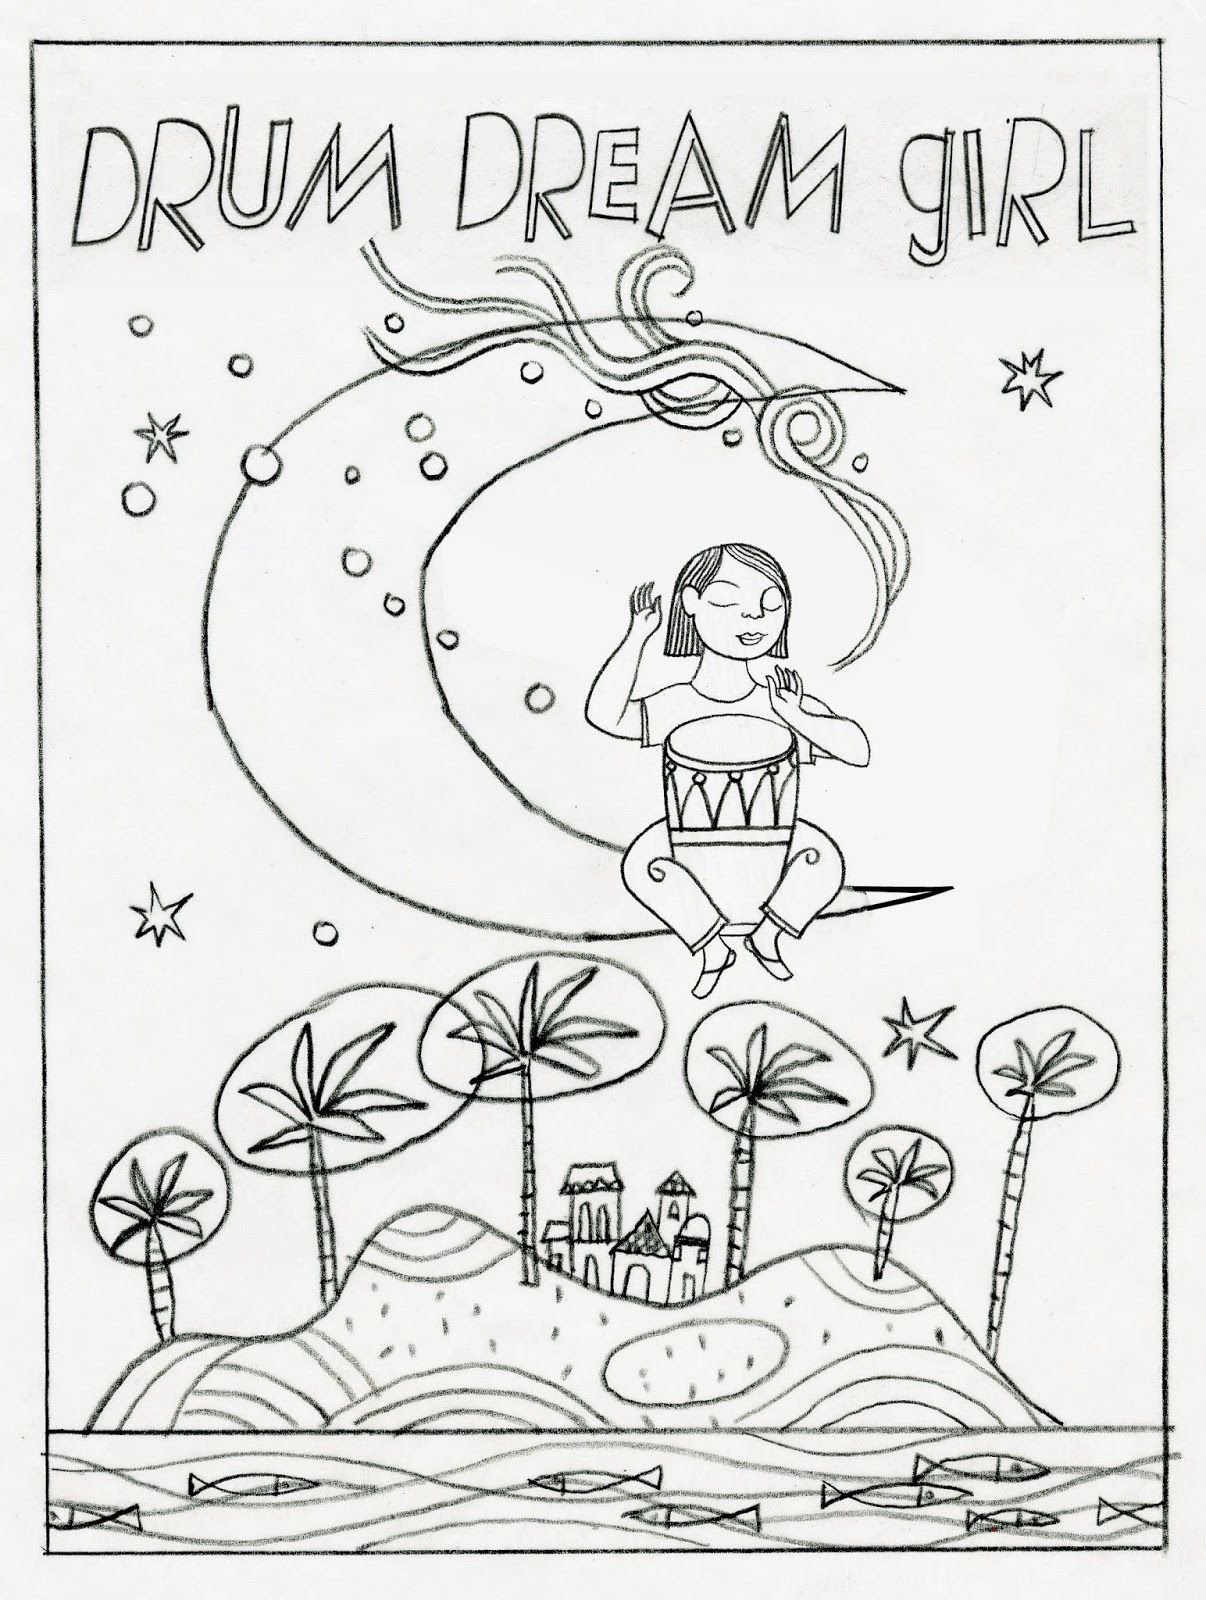 Finding My Rhythm With The Drum Dream Girl